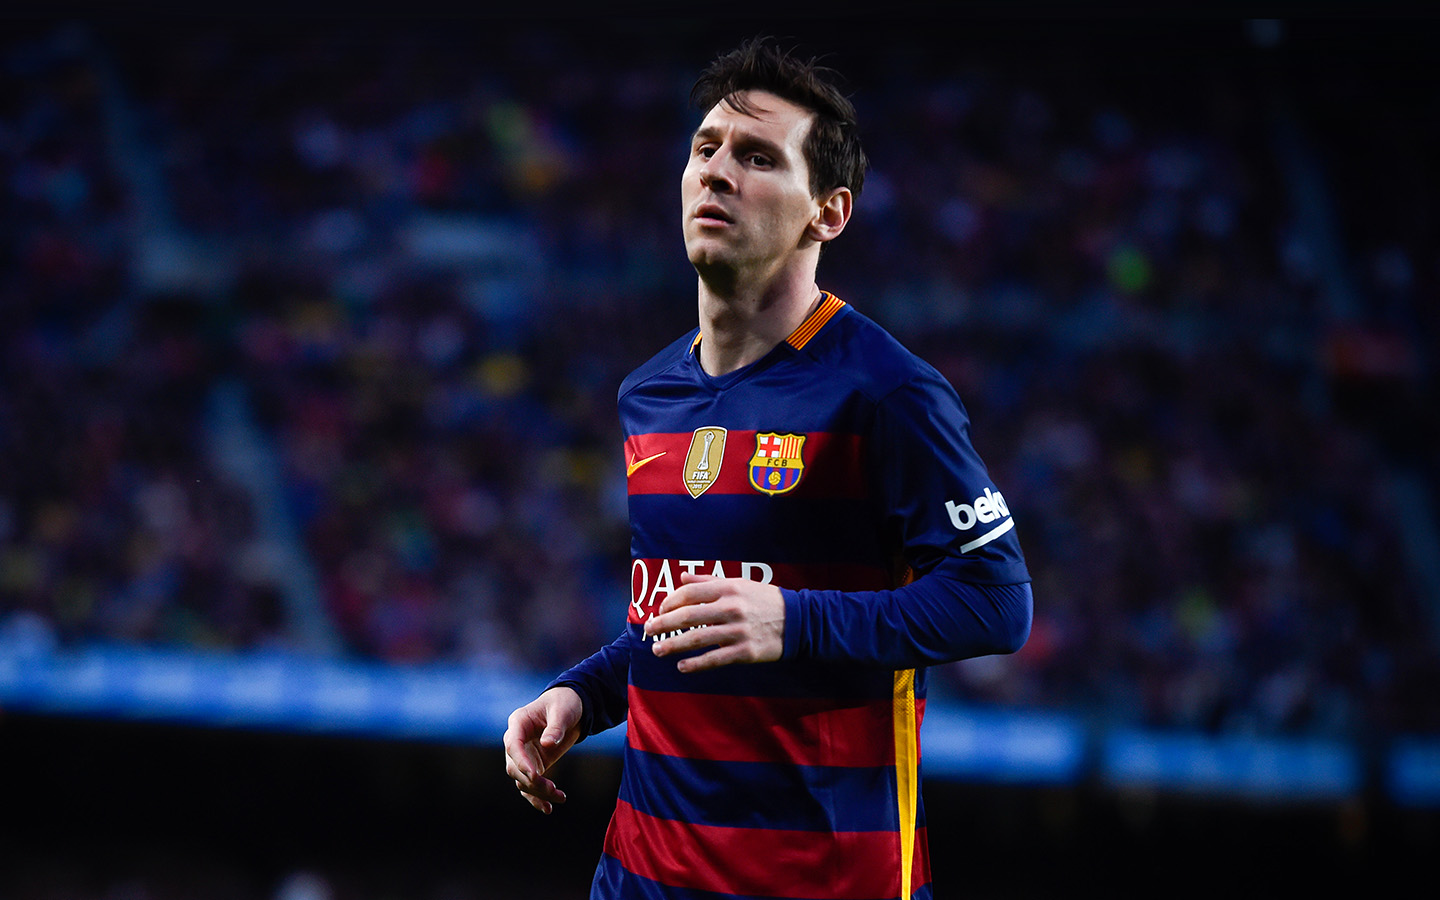 messi essay Commentary and archival information about lionel messi from the new york times sections home search skip to content skip to navigation the new york times  essay croatians savor the present .